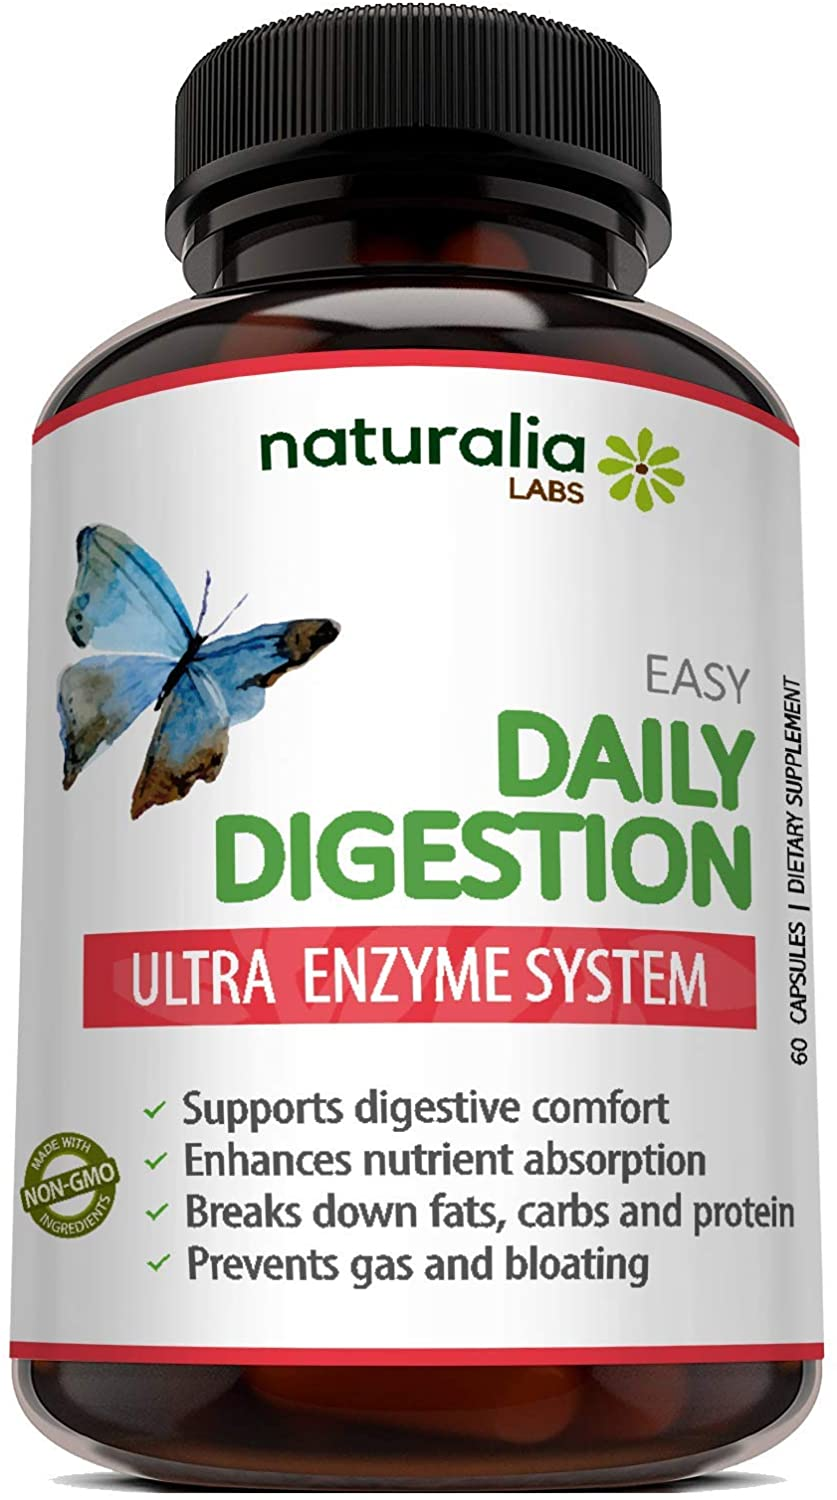 Naturalia Labs - Digestive Enzyme Supplements - Bromelain, Lactase, Lipase, Amylase, Papain, Protease - Stomach Health, Digestion, Bloating, IBS, Constipation, Gas Relief, Heartburn